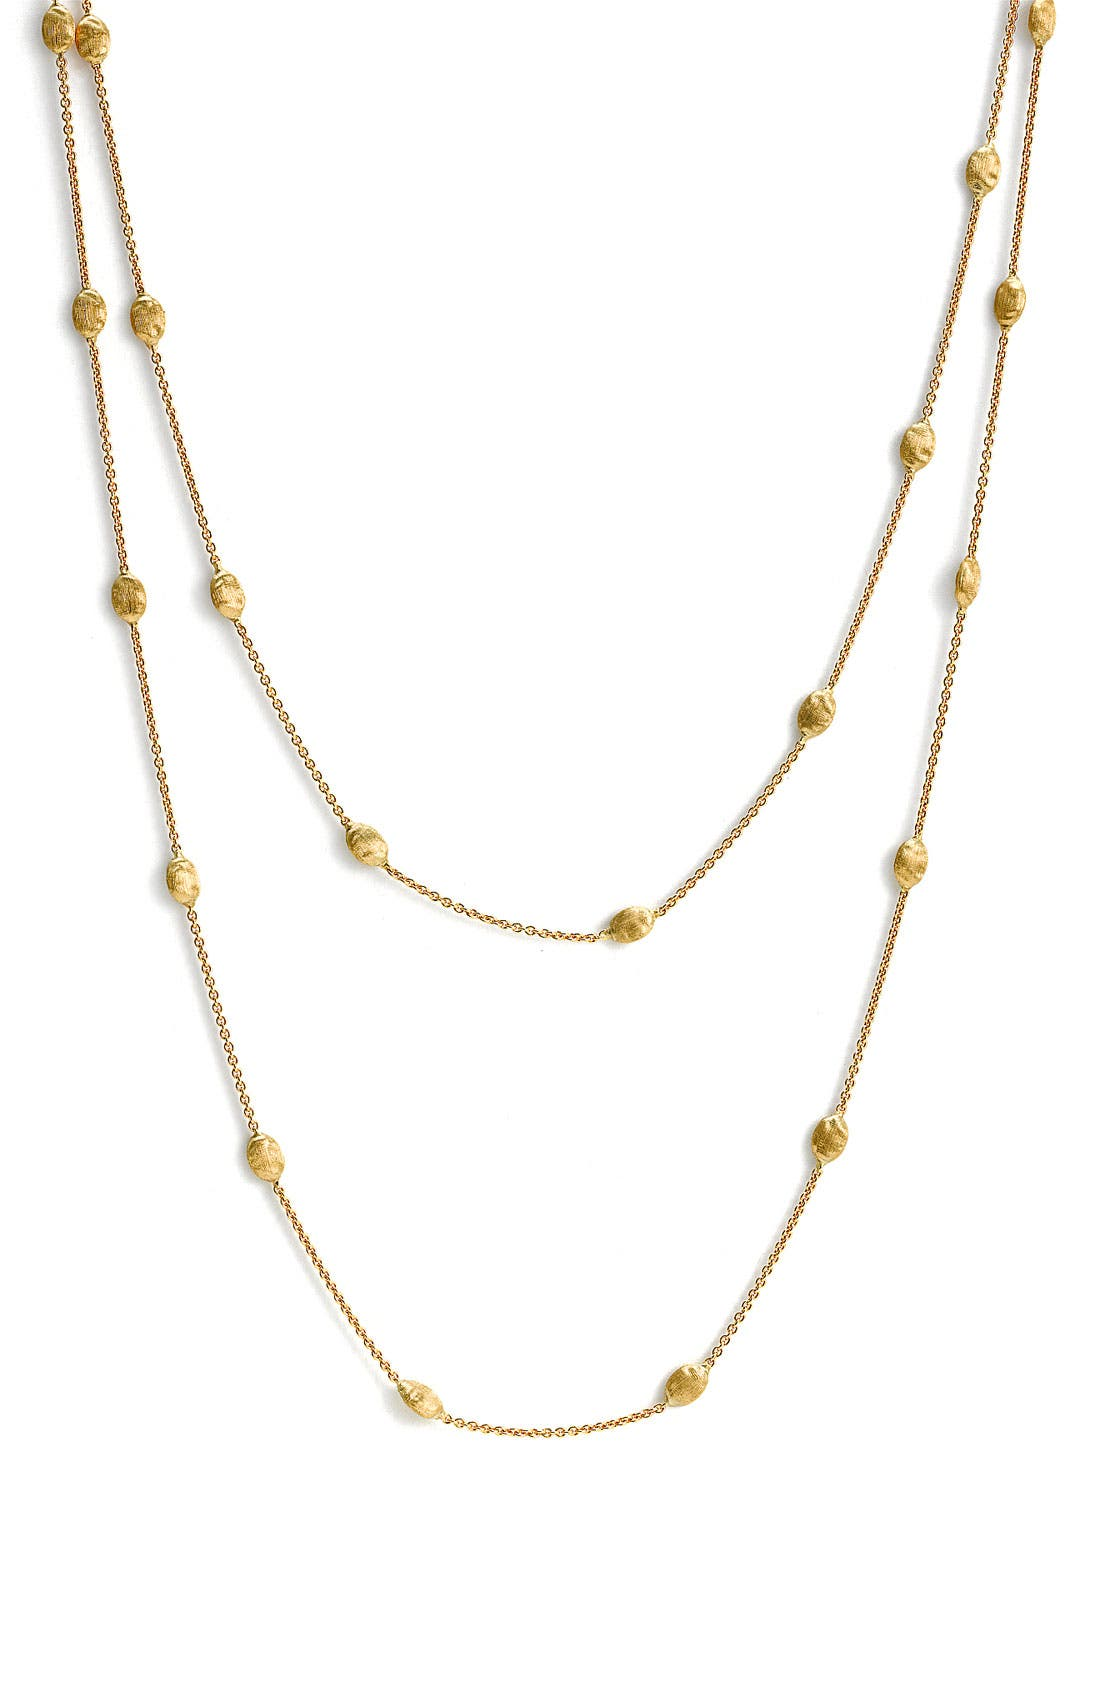 Main Image - Marco Bicego 'Siviglia' Long Necklace